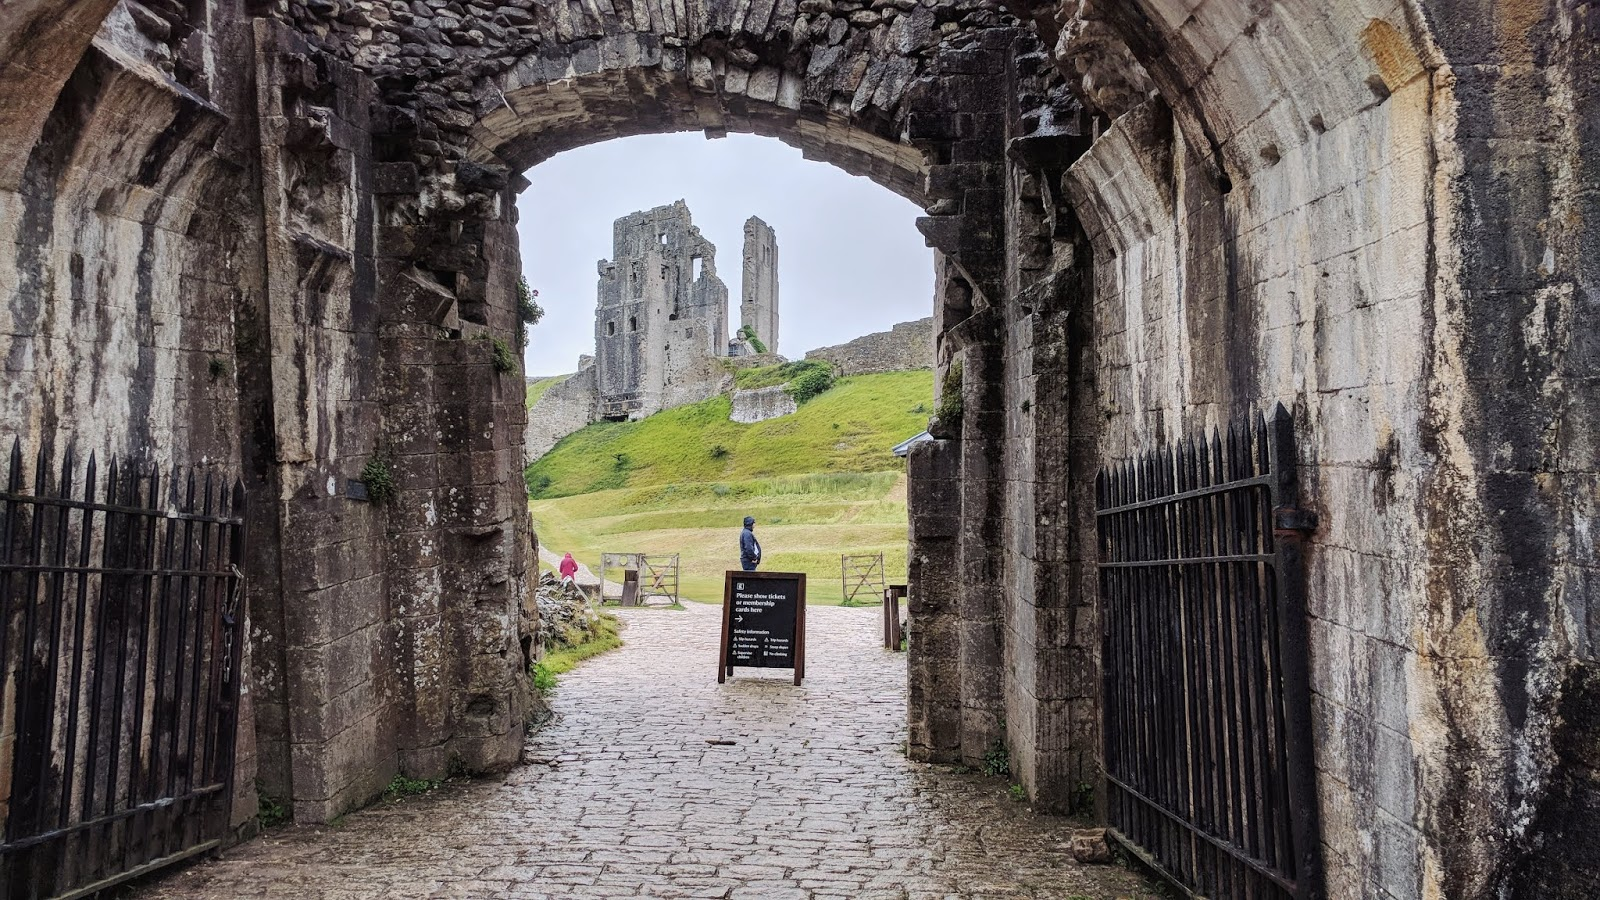 the entrance of Corfe Castle and the castle ruins